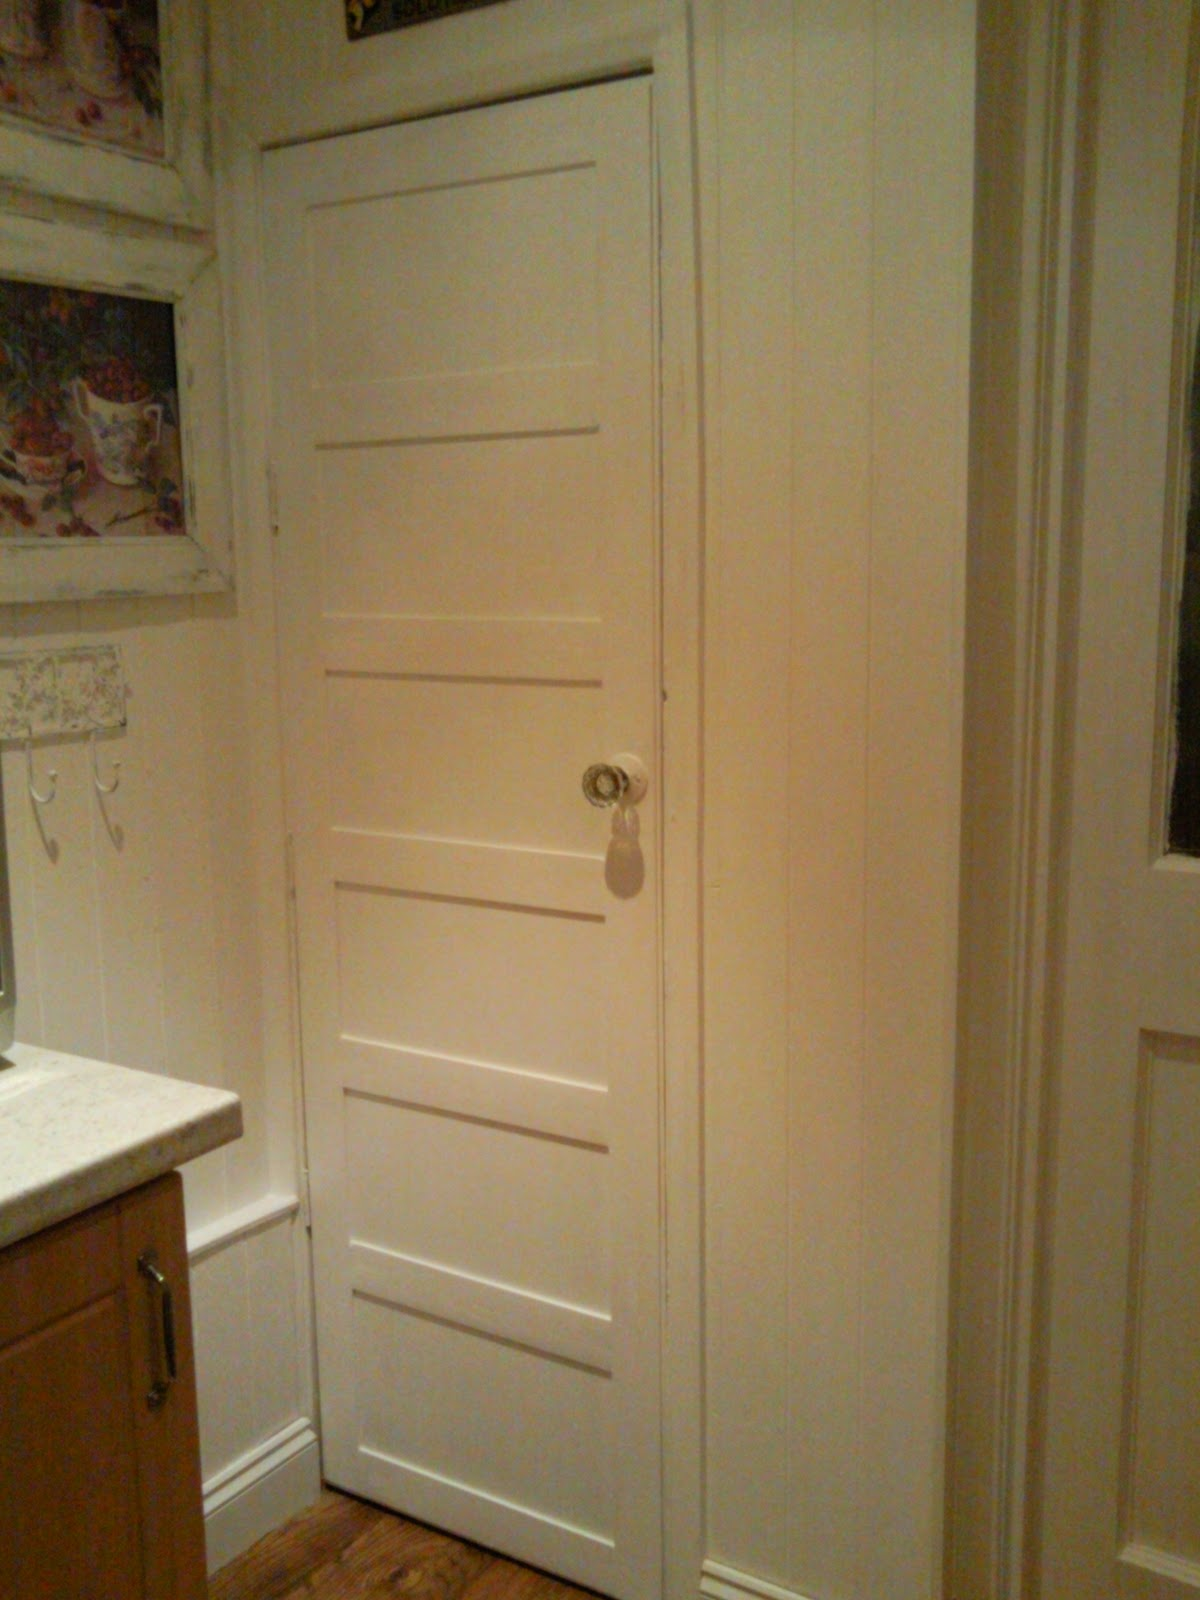 3 paneled white door with glass knob